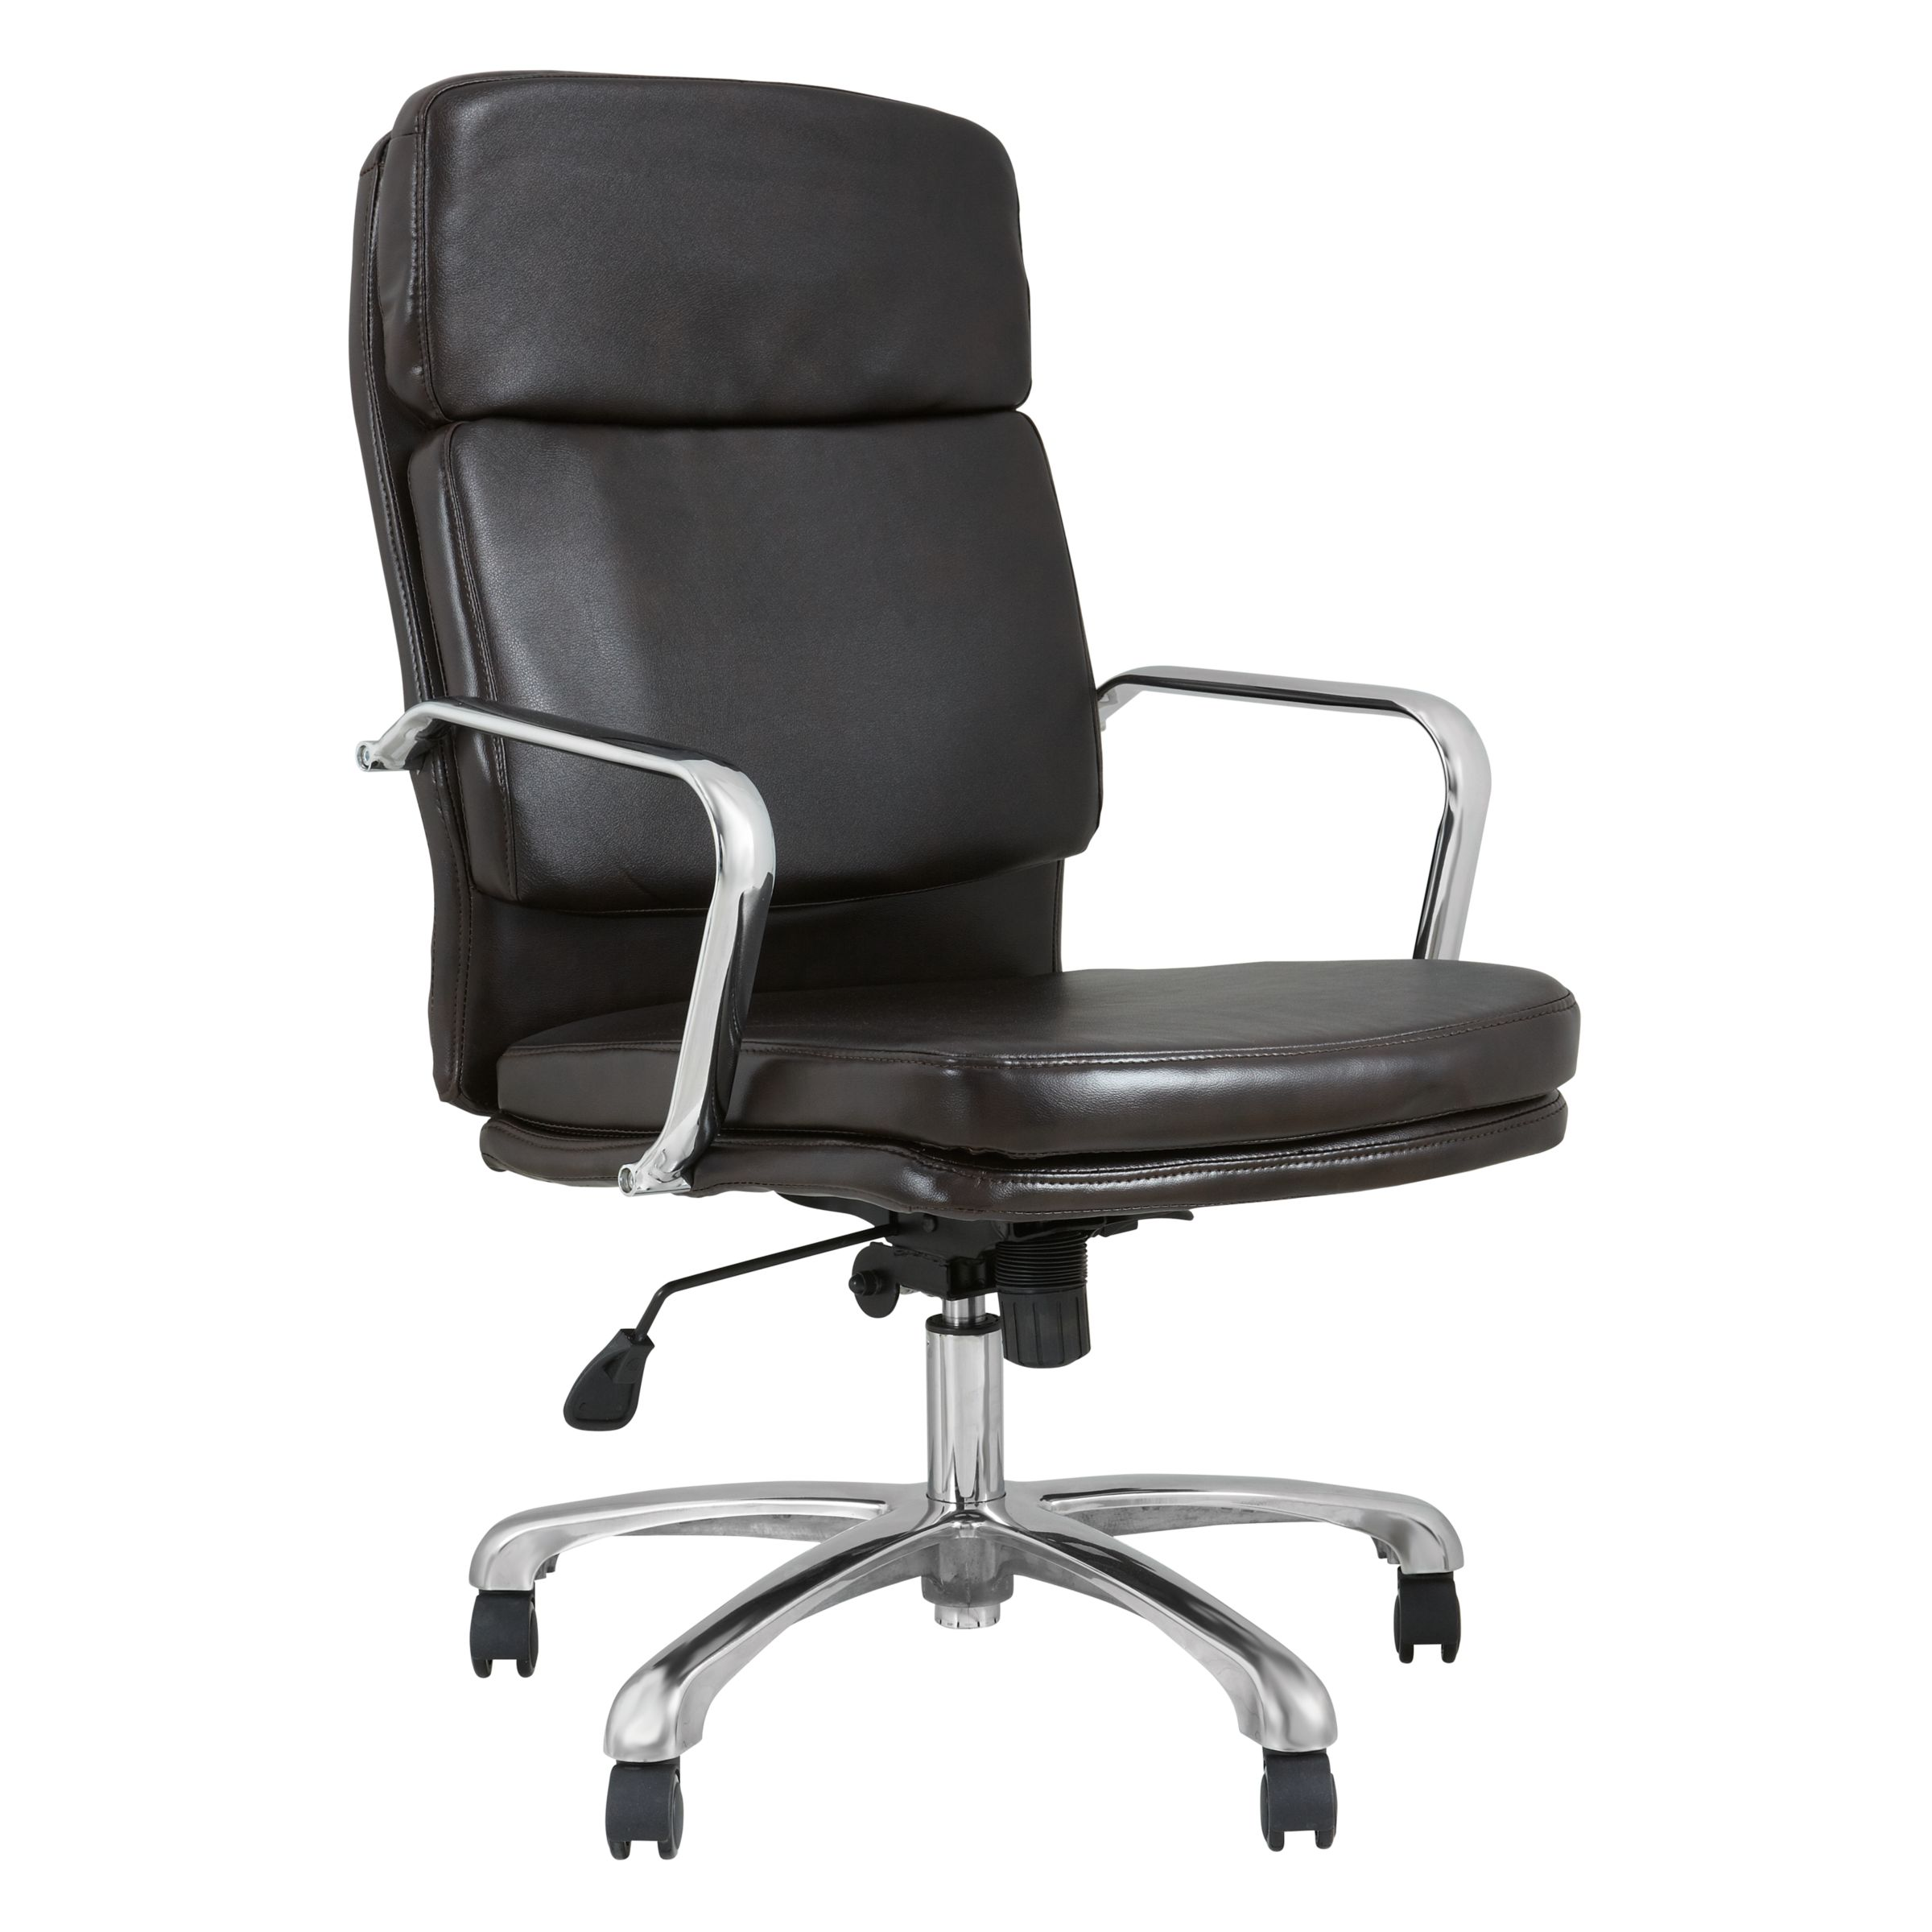 Top 10 Most Comfortable Office Chairs To Buy In The UK : 231149342alt1zoom John Lewis <strong>Department Store</strong> from www.homeofficechairs.co size 1600 x 1600 jpeg 199kB